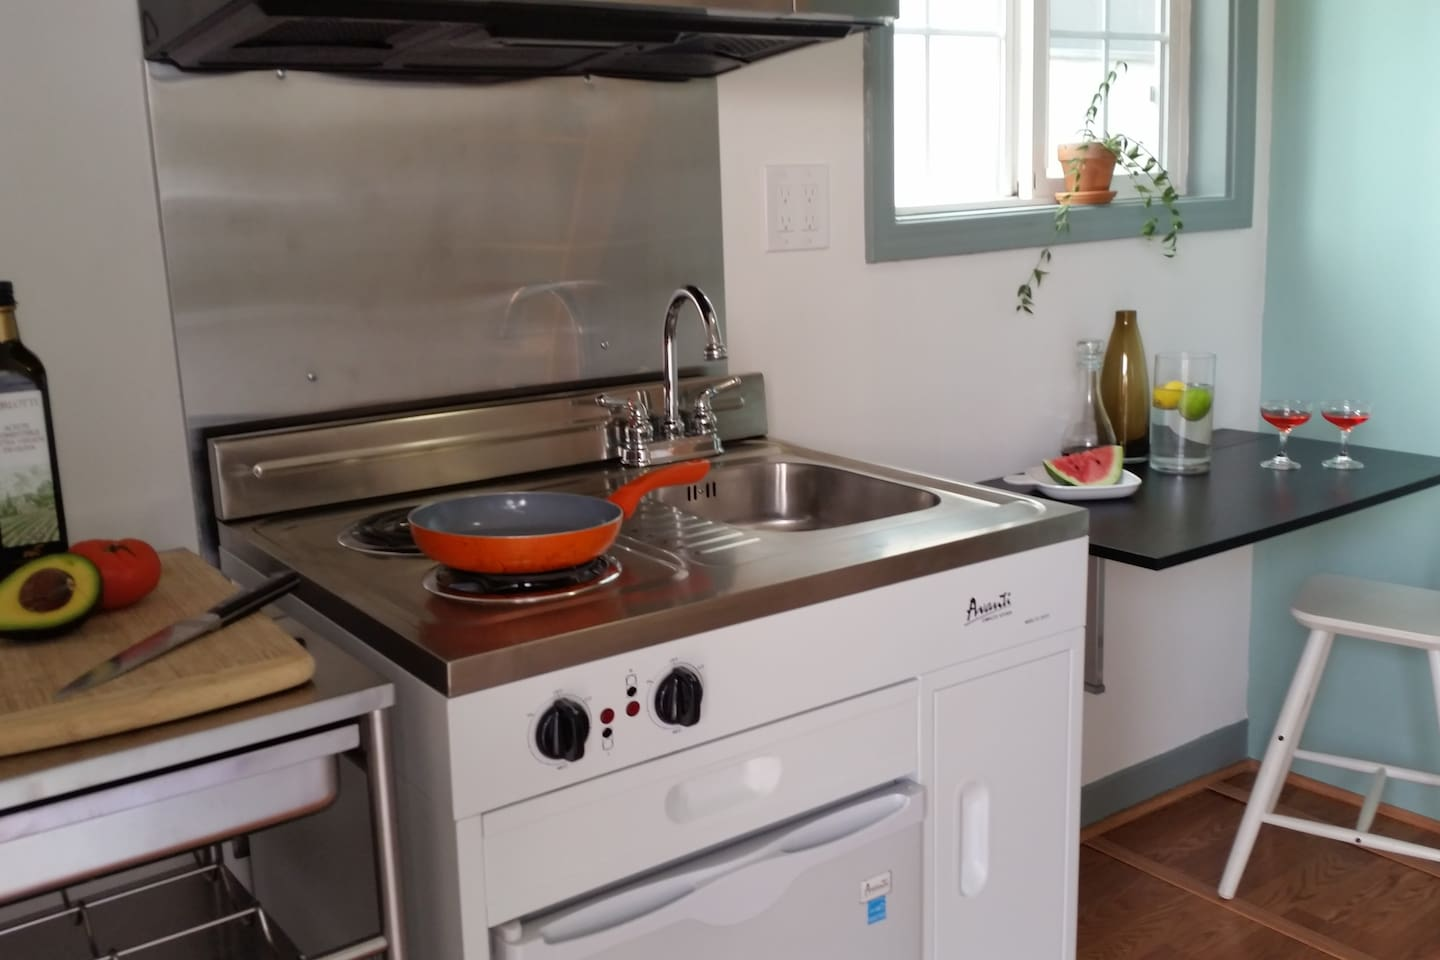 Kitchen unit with two-burner stove, sink, pantry, mini refrigerator and full size microwave.